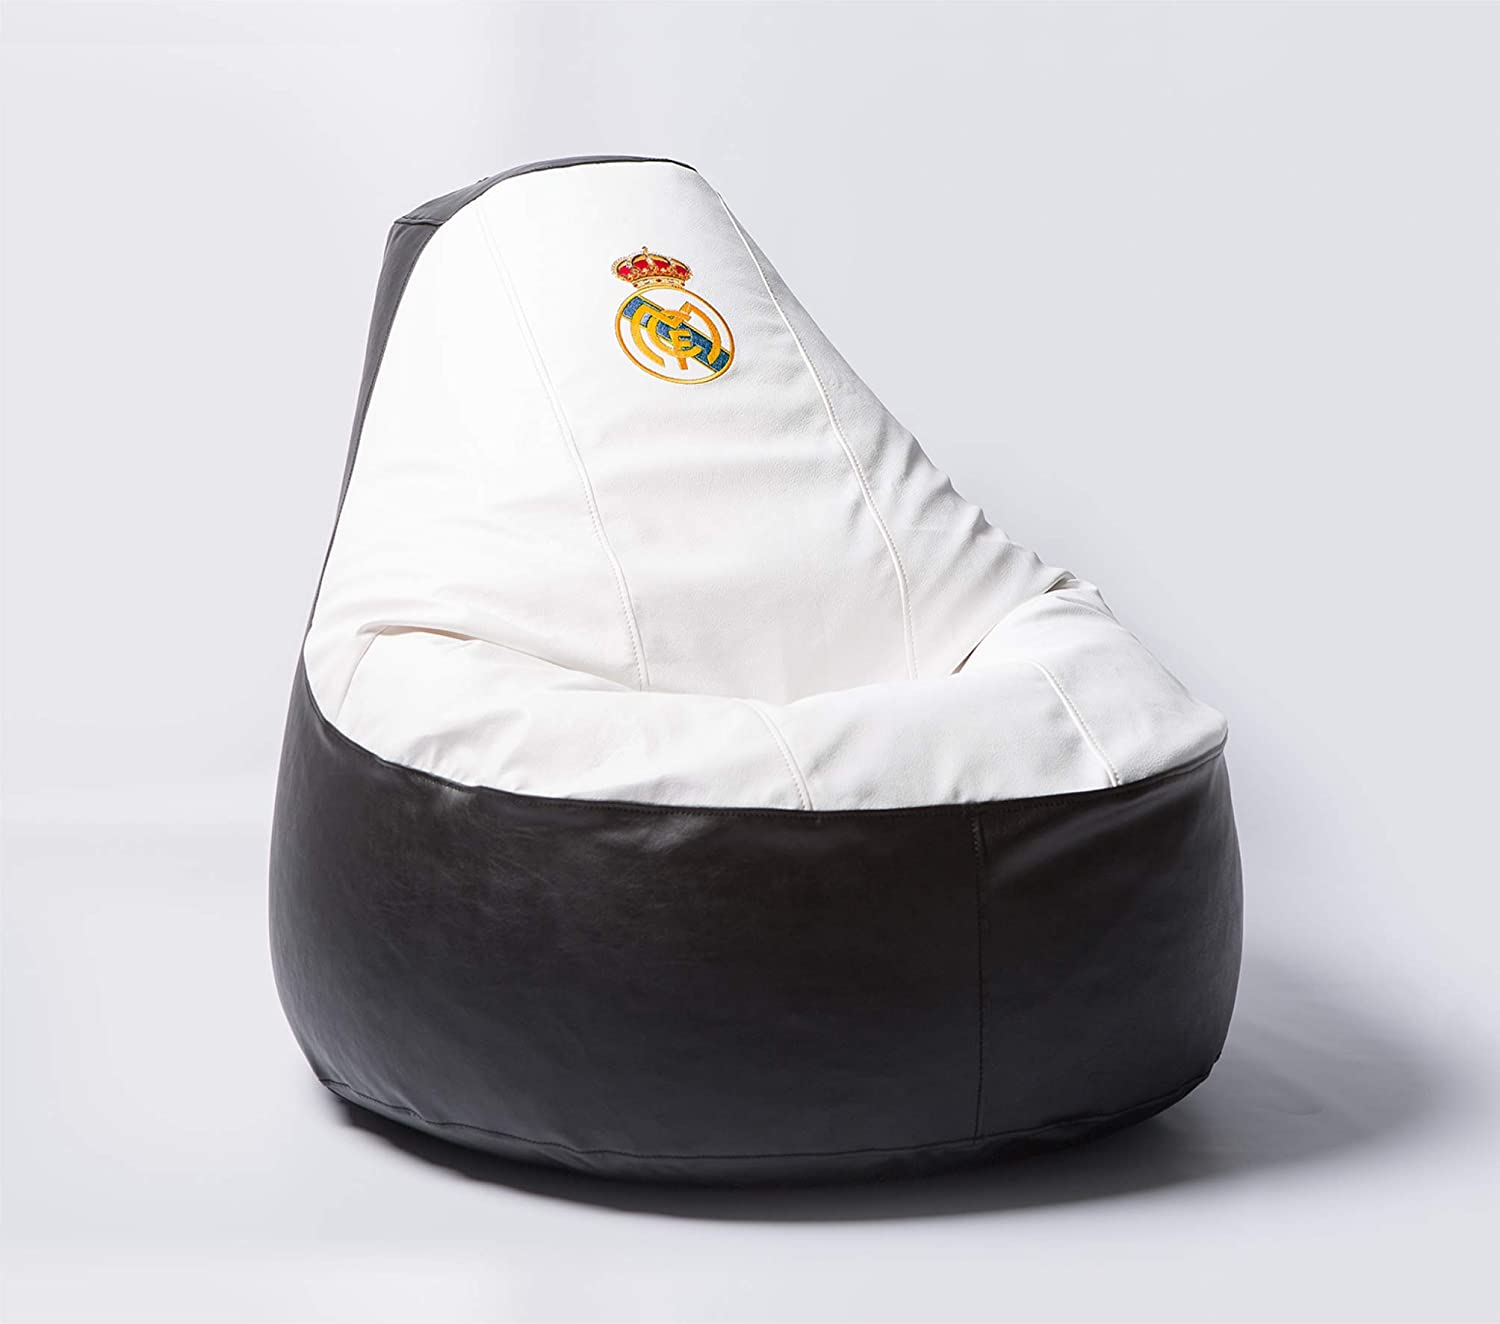 Real Madrid Football Beanbag Comfortable Kids Adult Game Outdoor Indoor Lounge Chair Cover + Inner Bag (Without Beans)